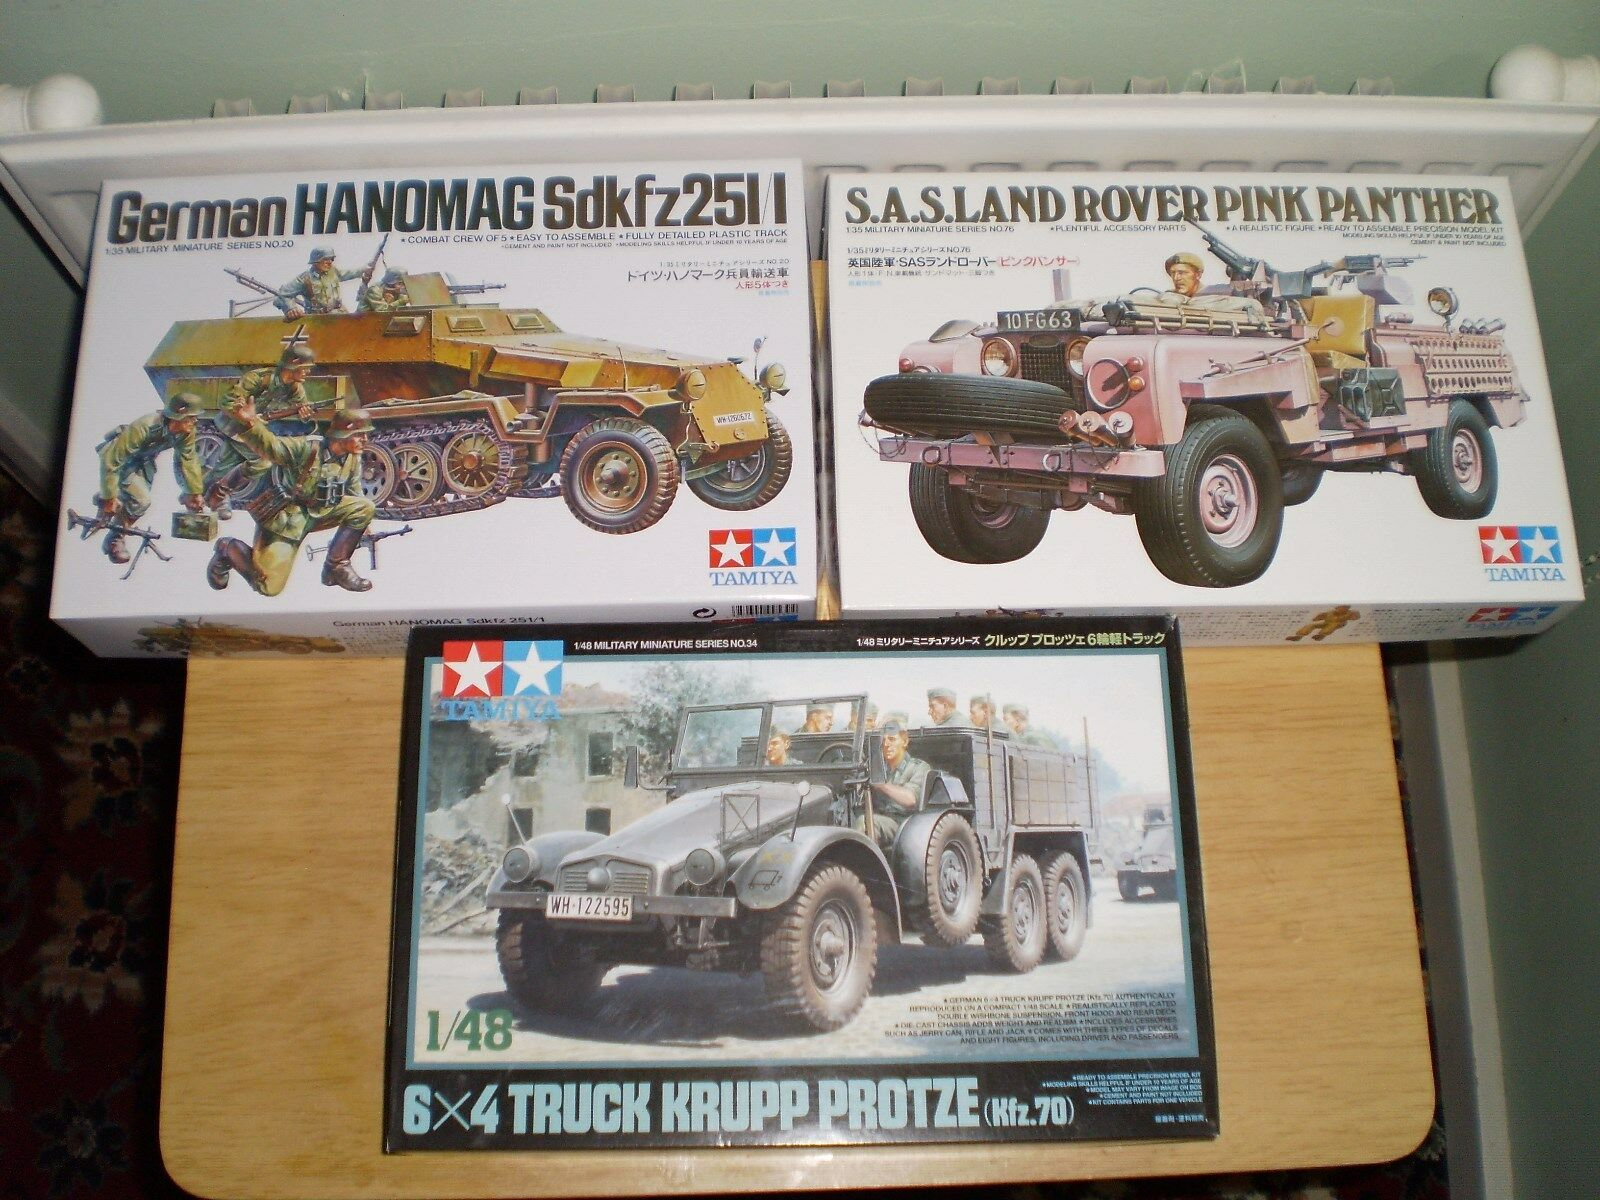 TAMIYA X2 1 35 AND 1 48 MILITARY MODEL KITS HANOMAG LAND ROVER KRUPP PredZE